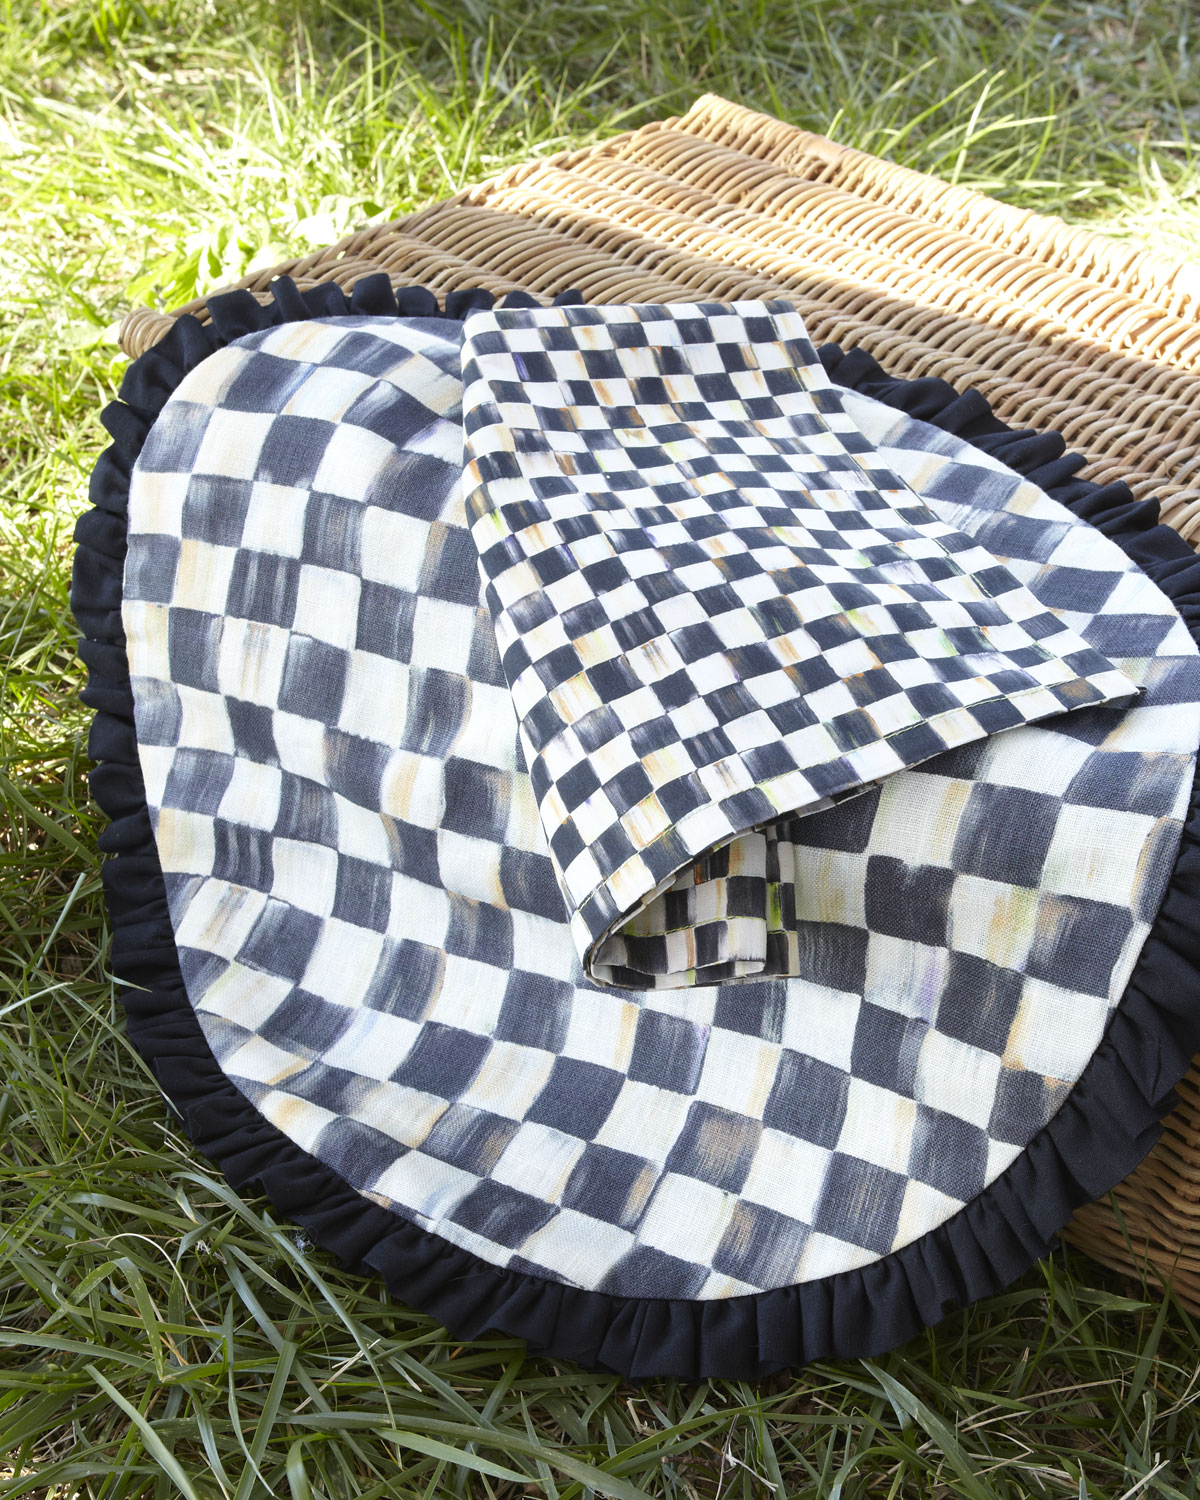 Mackenzie Childs Courtly Check Round Placemat With Black Ruffle